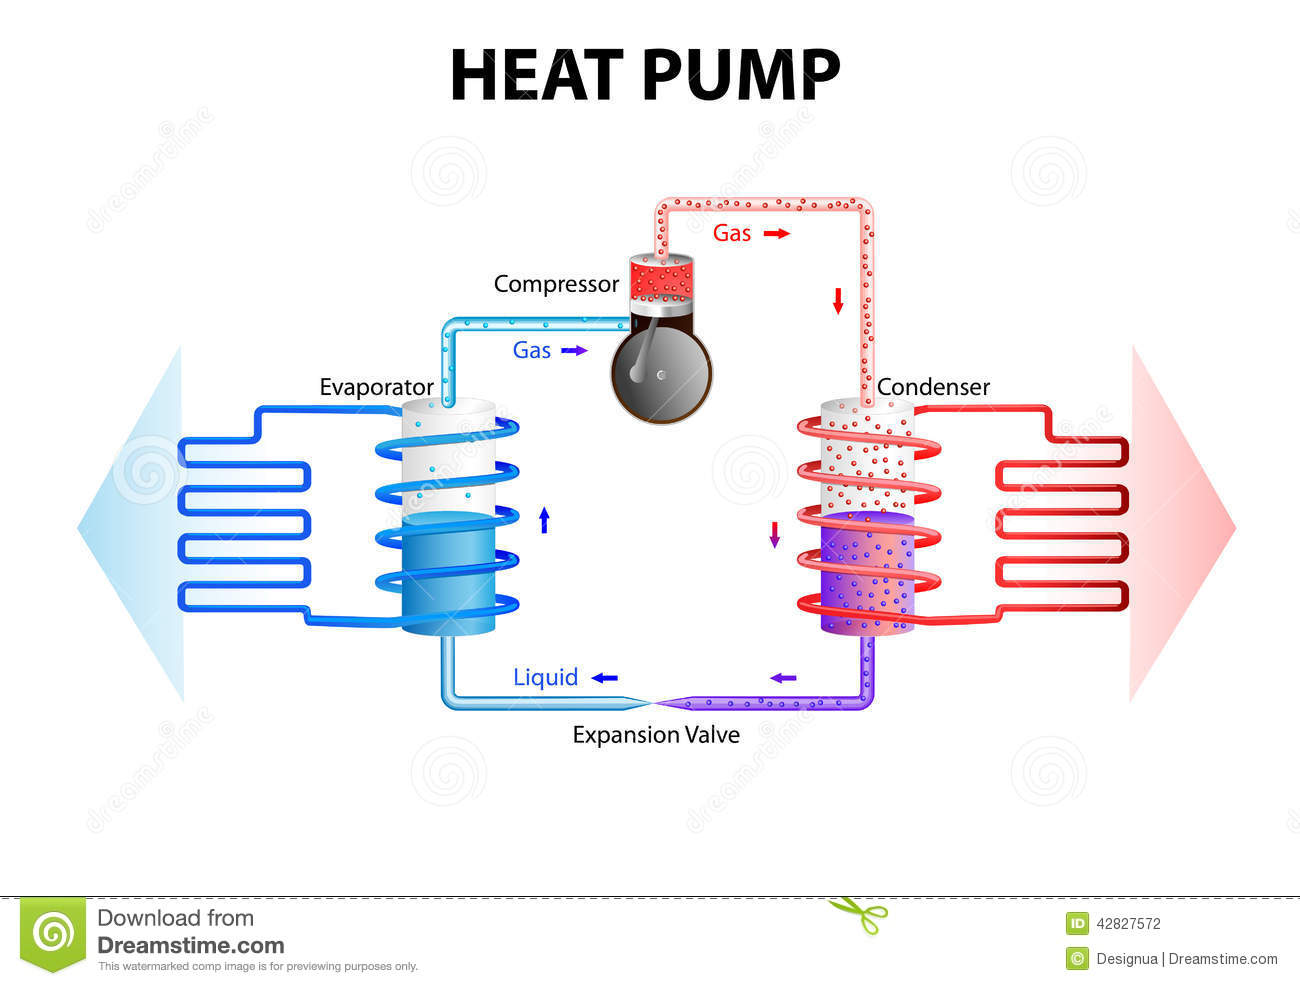 heat pump cooling system works extracting energy stored ground water converts building heating pumps 42827572 how a air conditioner works grihon com ac, coolers & devices how does air conditioning work diagram at nearapp.co